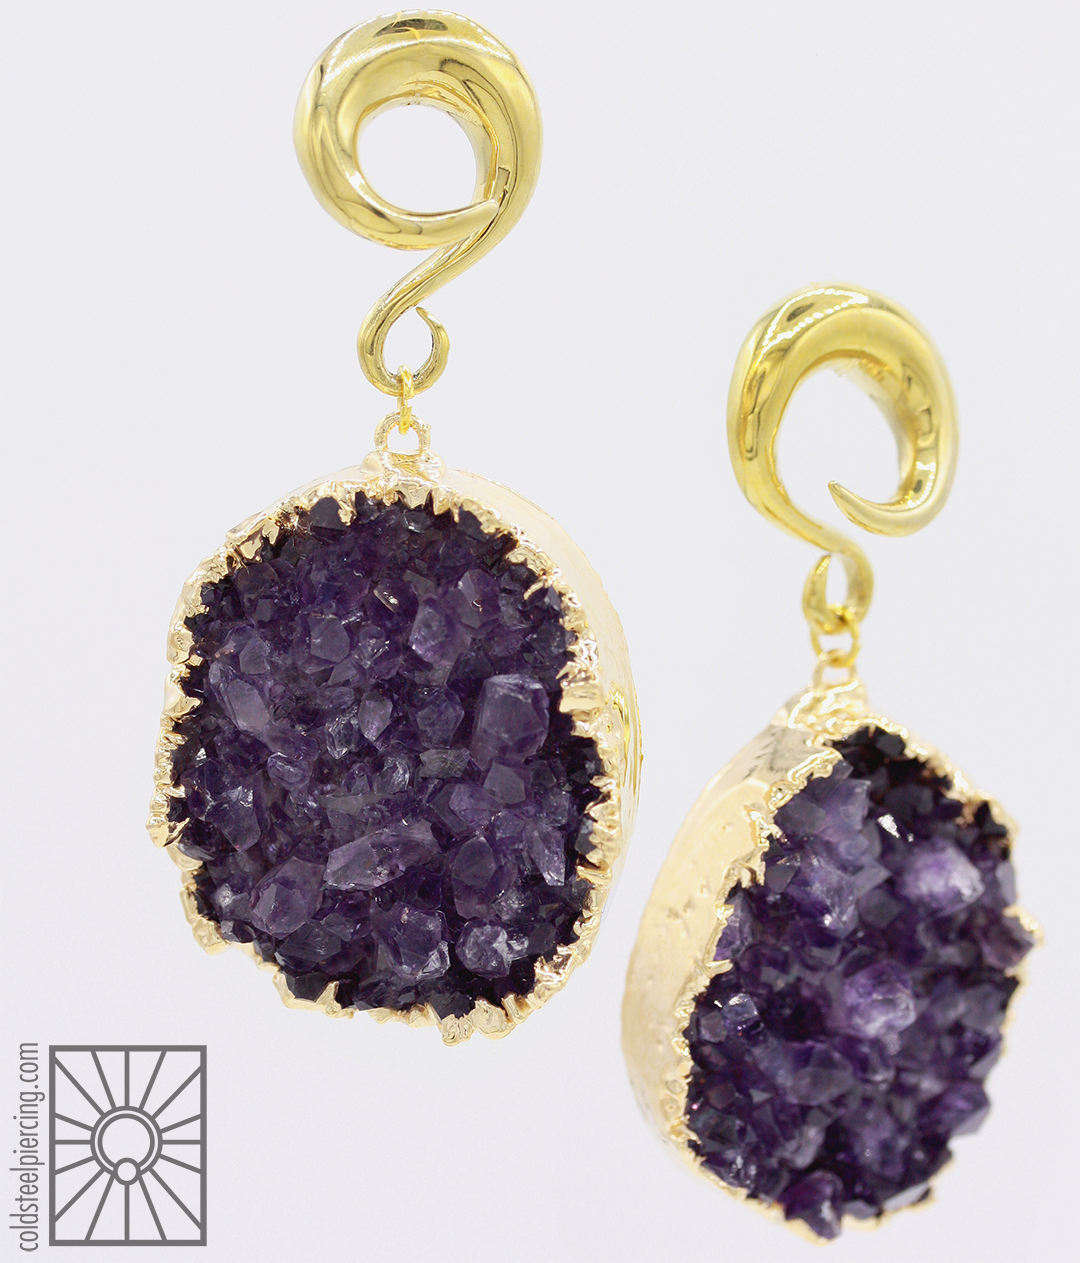 Gorgeous set of gold-dipped Amethyst druzy weights with 2g brass coils we ordered for a customer from those wonderful folks at Diablo Organics ✨ We've got a couple of other sets available in the studio and online store!